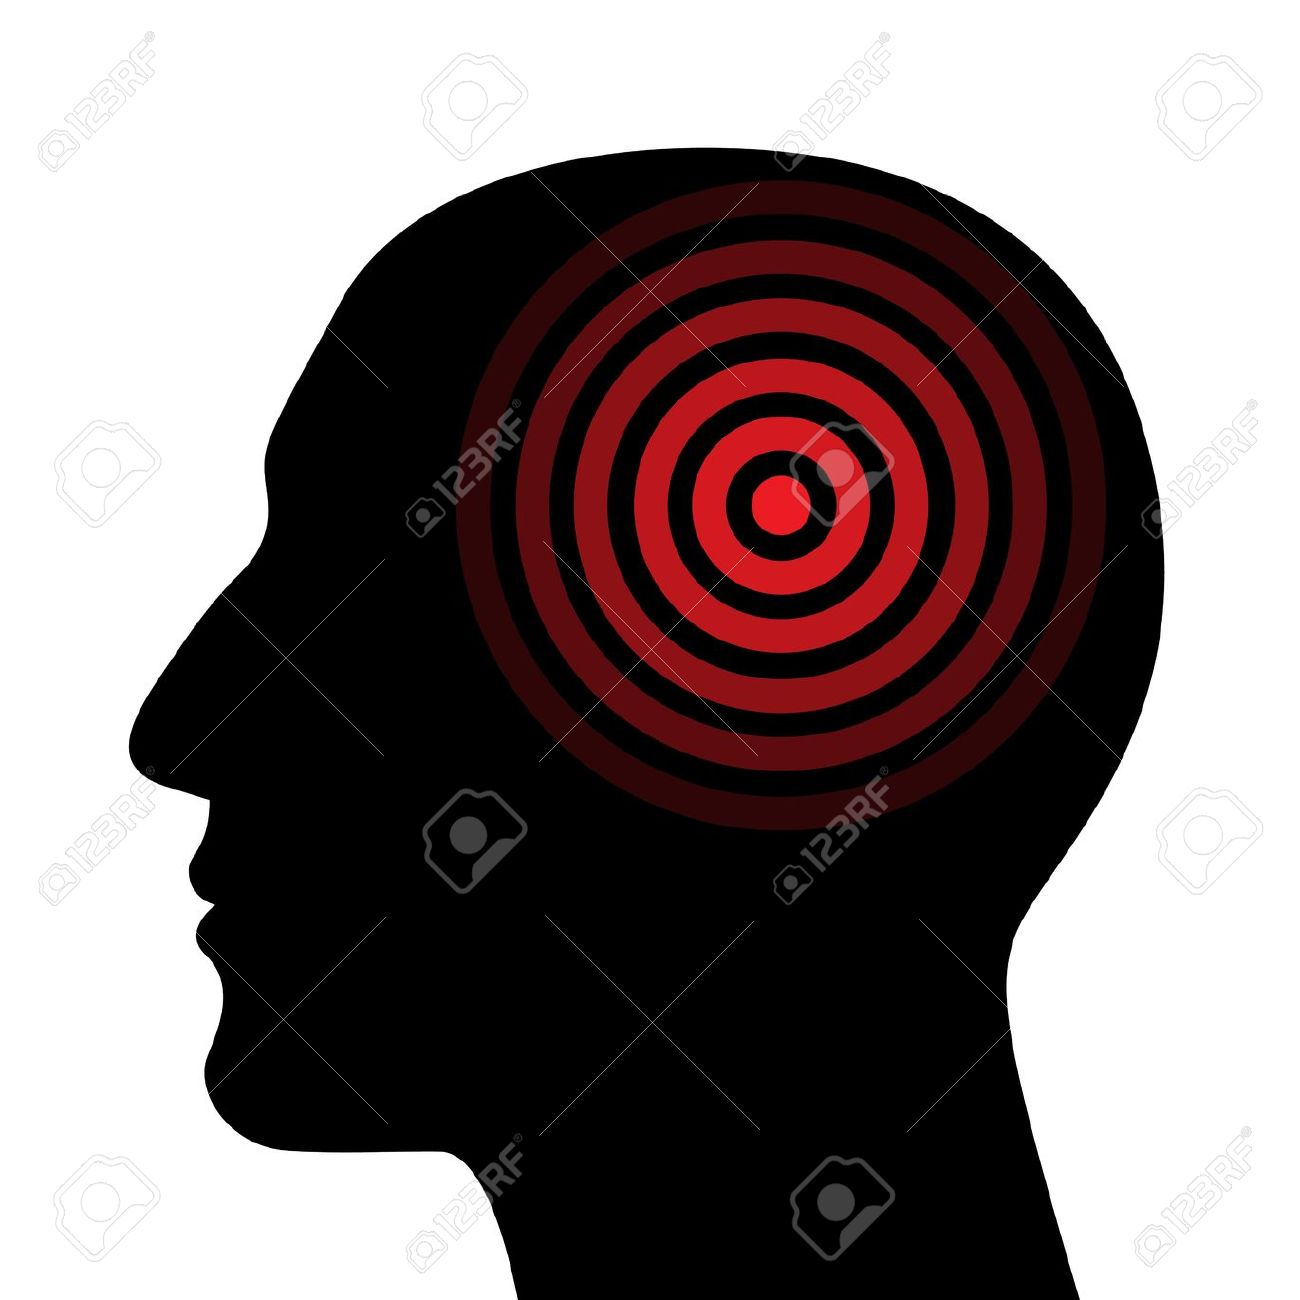 Silhouette Of A Human Head Wit The Target Royalty Free Cliparts.